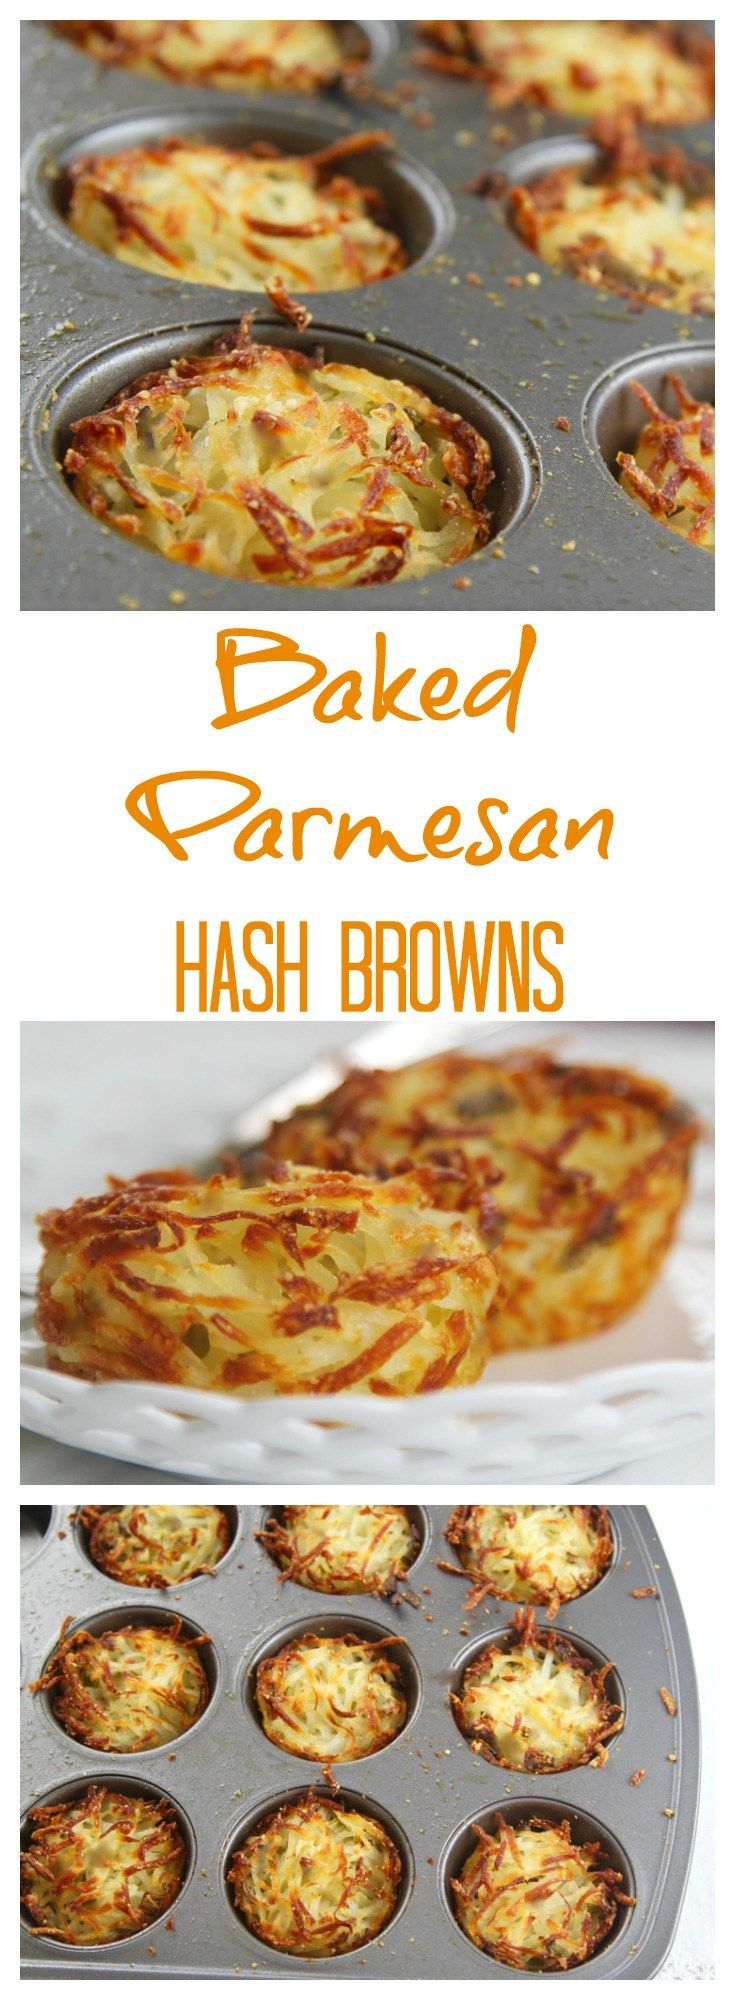 Easy parmesan hash browns baked in muffin cups for crispy edges and soft centers. Prep the night before and bake in the morning